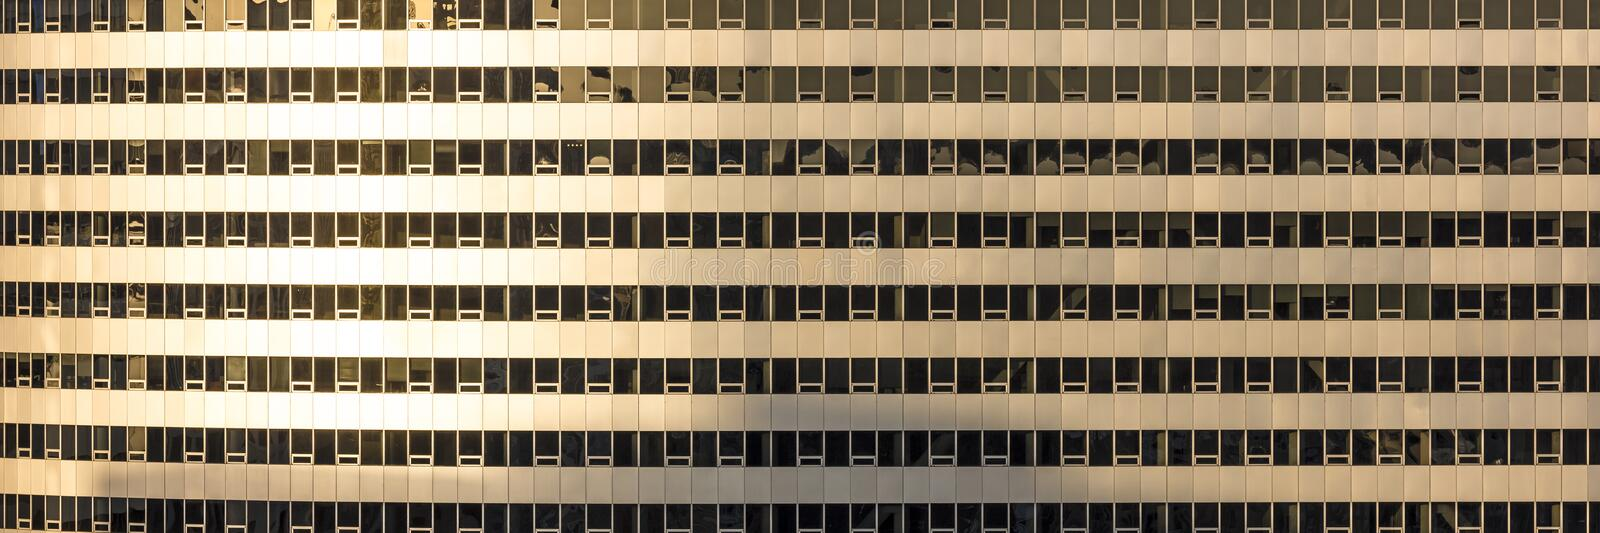 MARCH 26, 2018 - Rosslyn Twin Tower, former USA Today building, panoramic pattern of windows at. Skyline, morning stock image